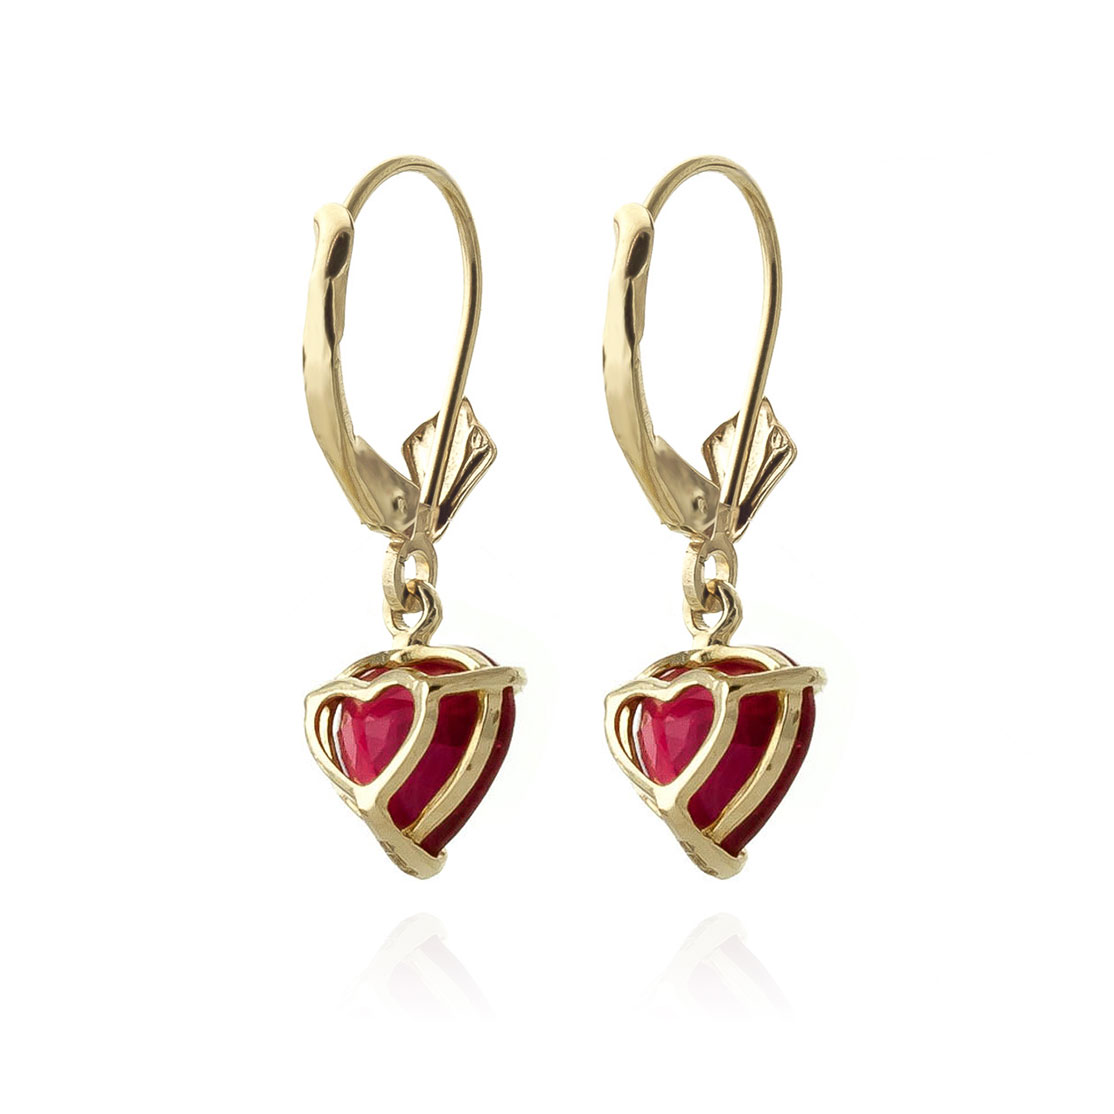 Ruby Heart Drop Earrings 2.9ctw in 9ct Gold